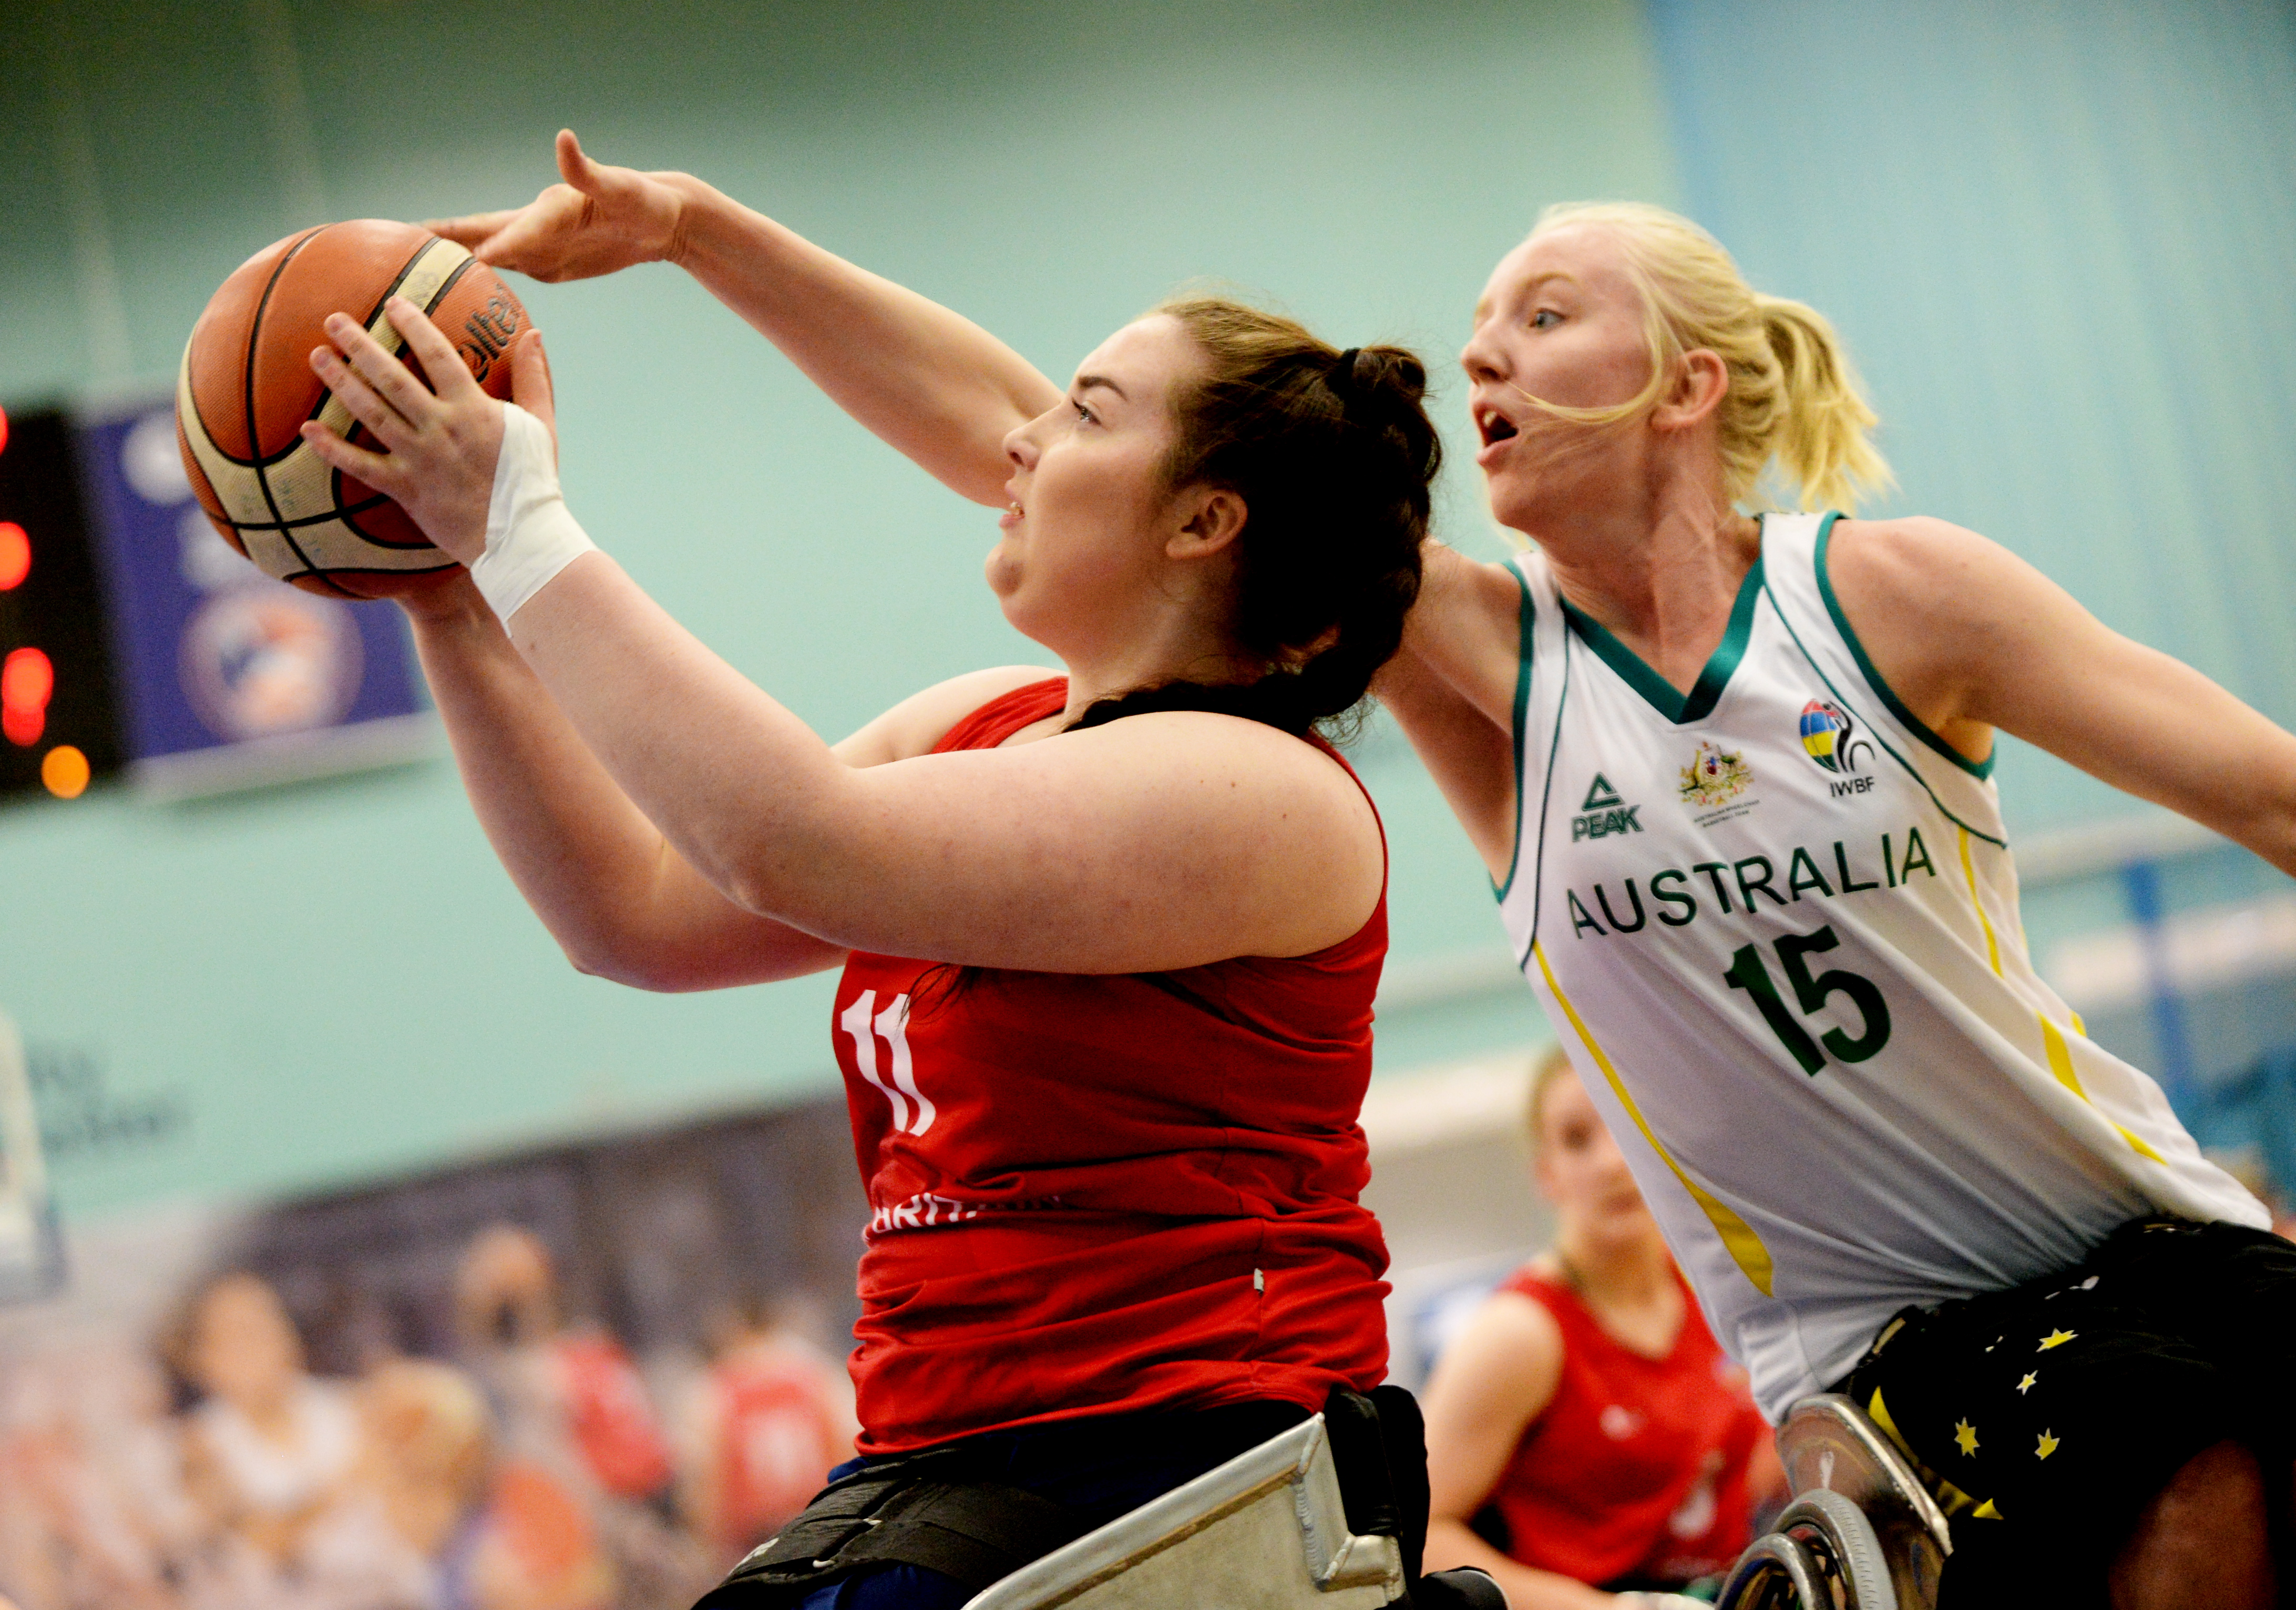 Photo of Katie Morrow playing wheelchair basketball. Katie is taking a shot and someone is going in to try and block her.